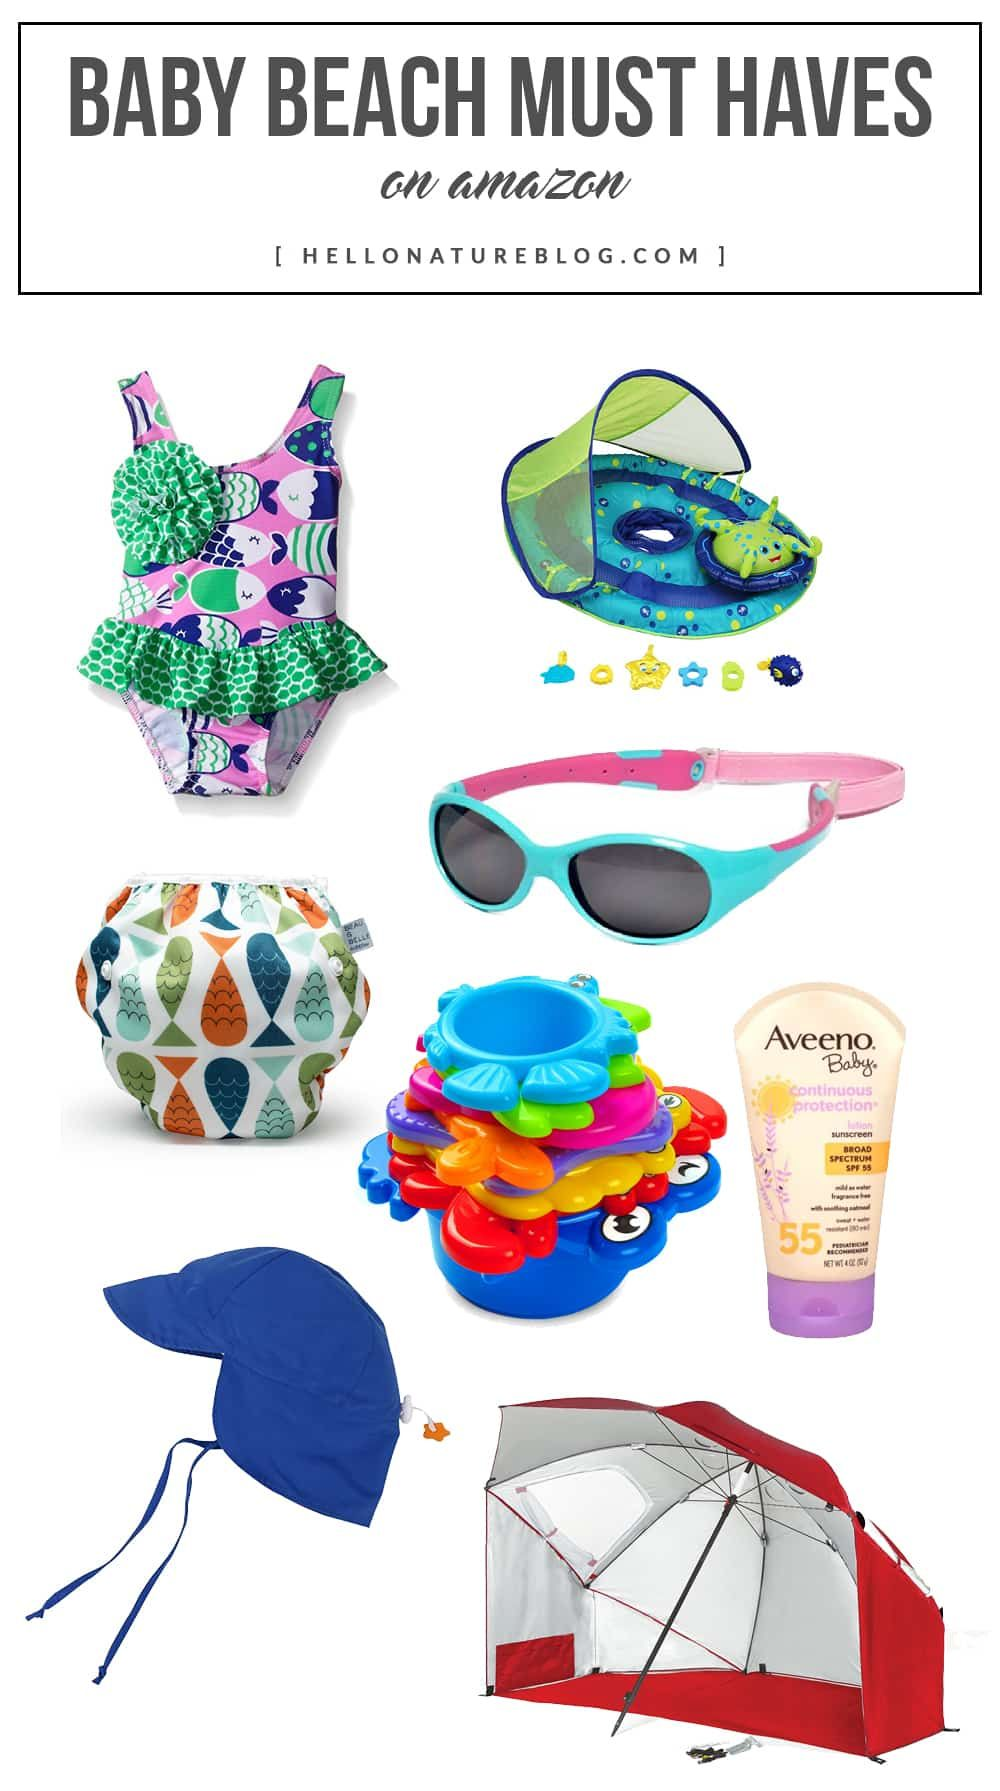 62a9c0c7636 Headed to the beach this Summer with your little one  Check out these top  baby beach must haves to make the trip as enjoyable as possible!